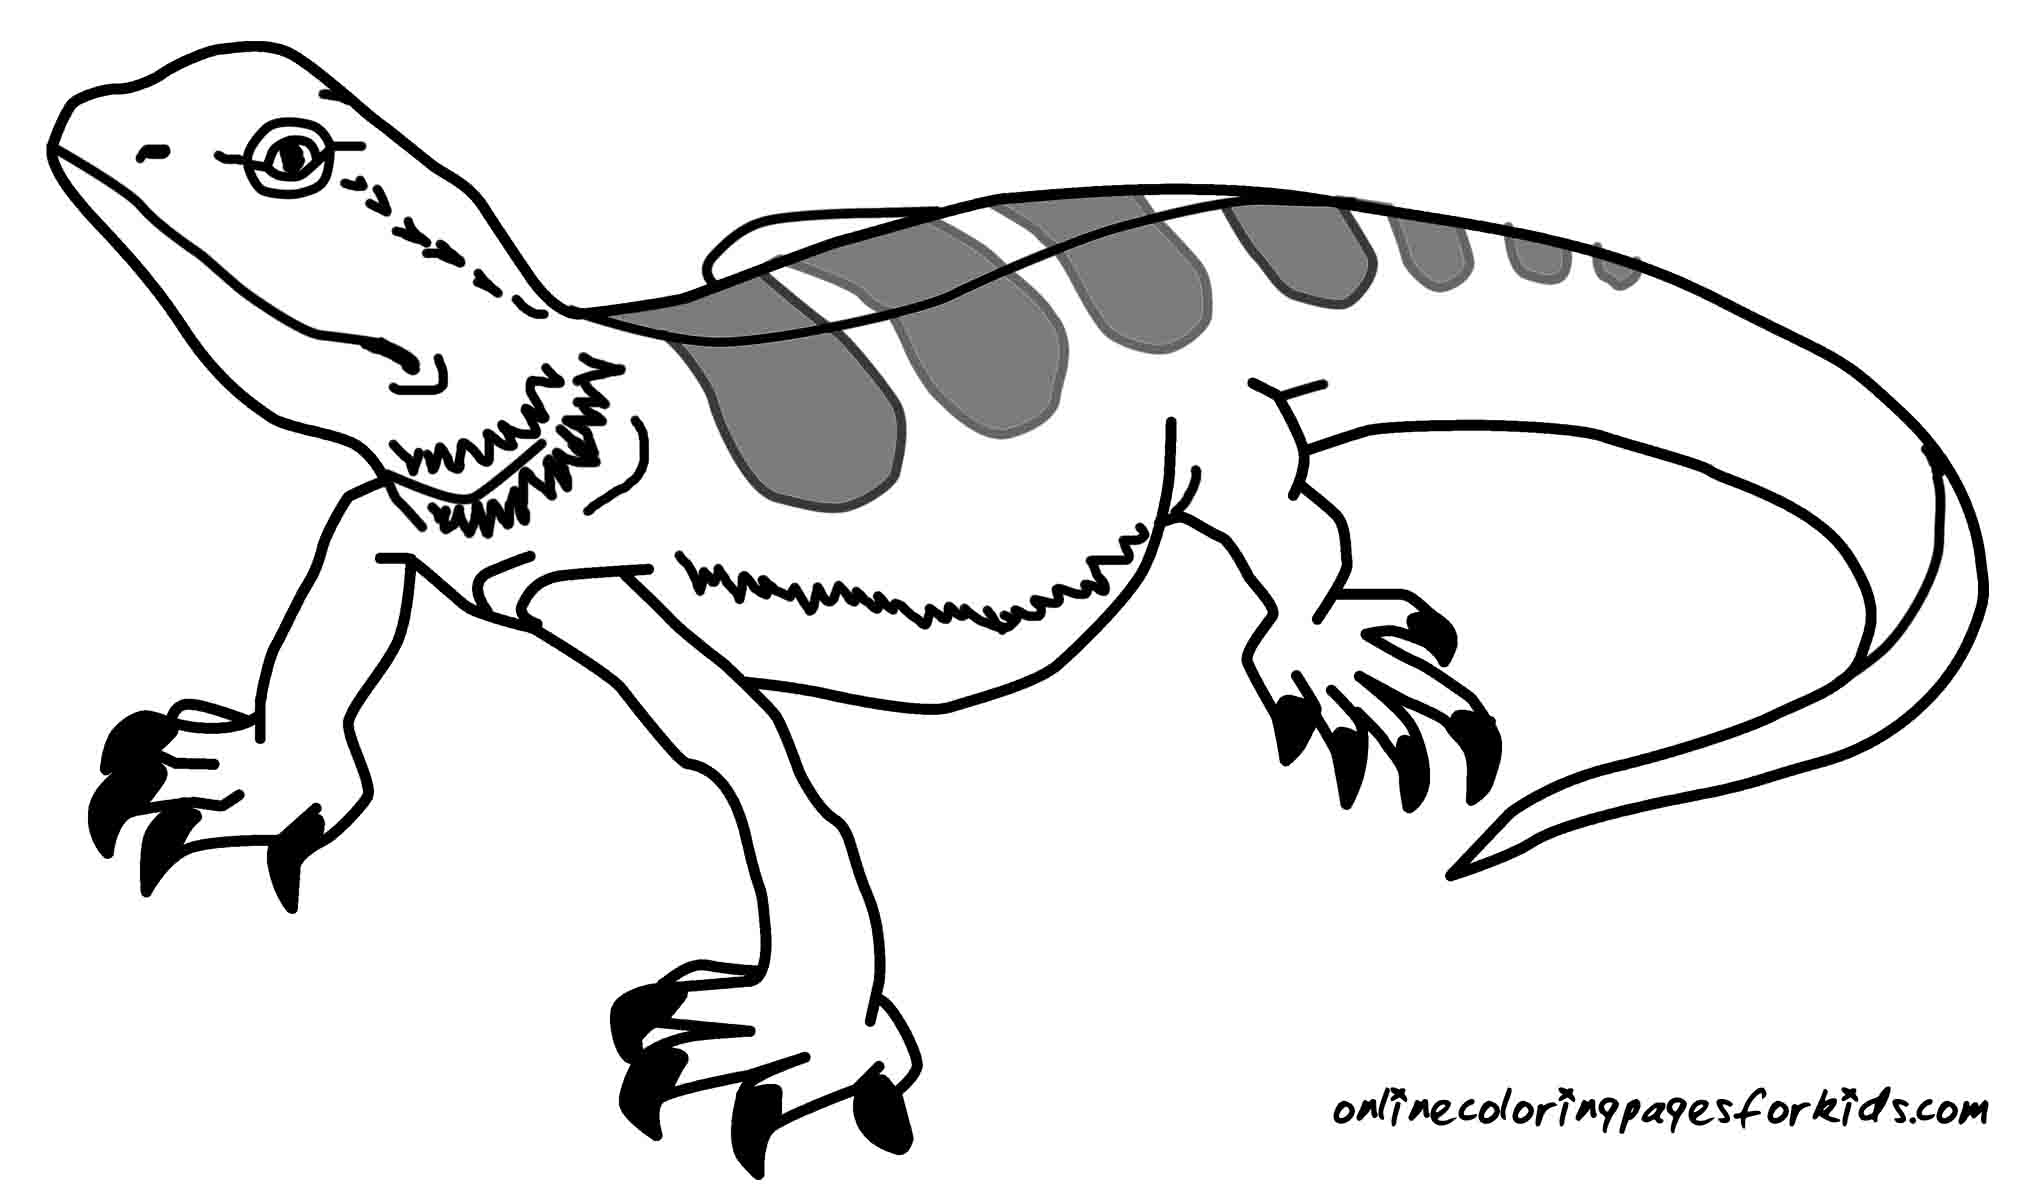 13 Lizard Coloring Pages Printable